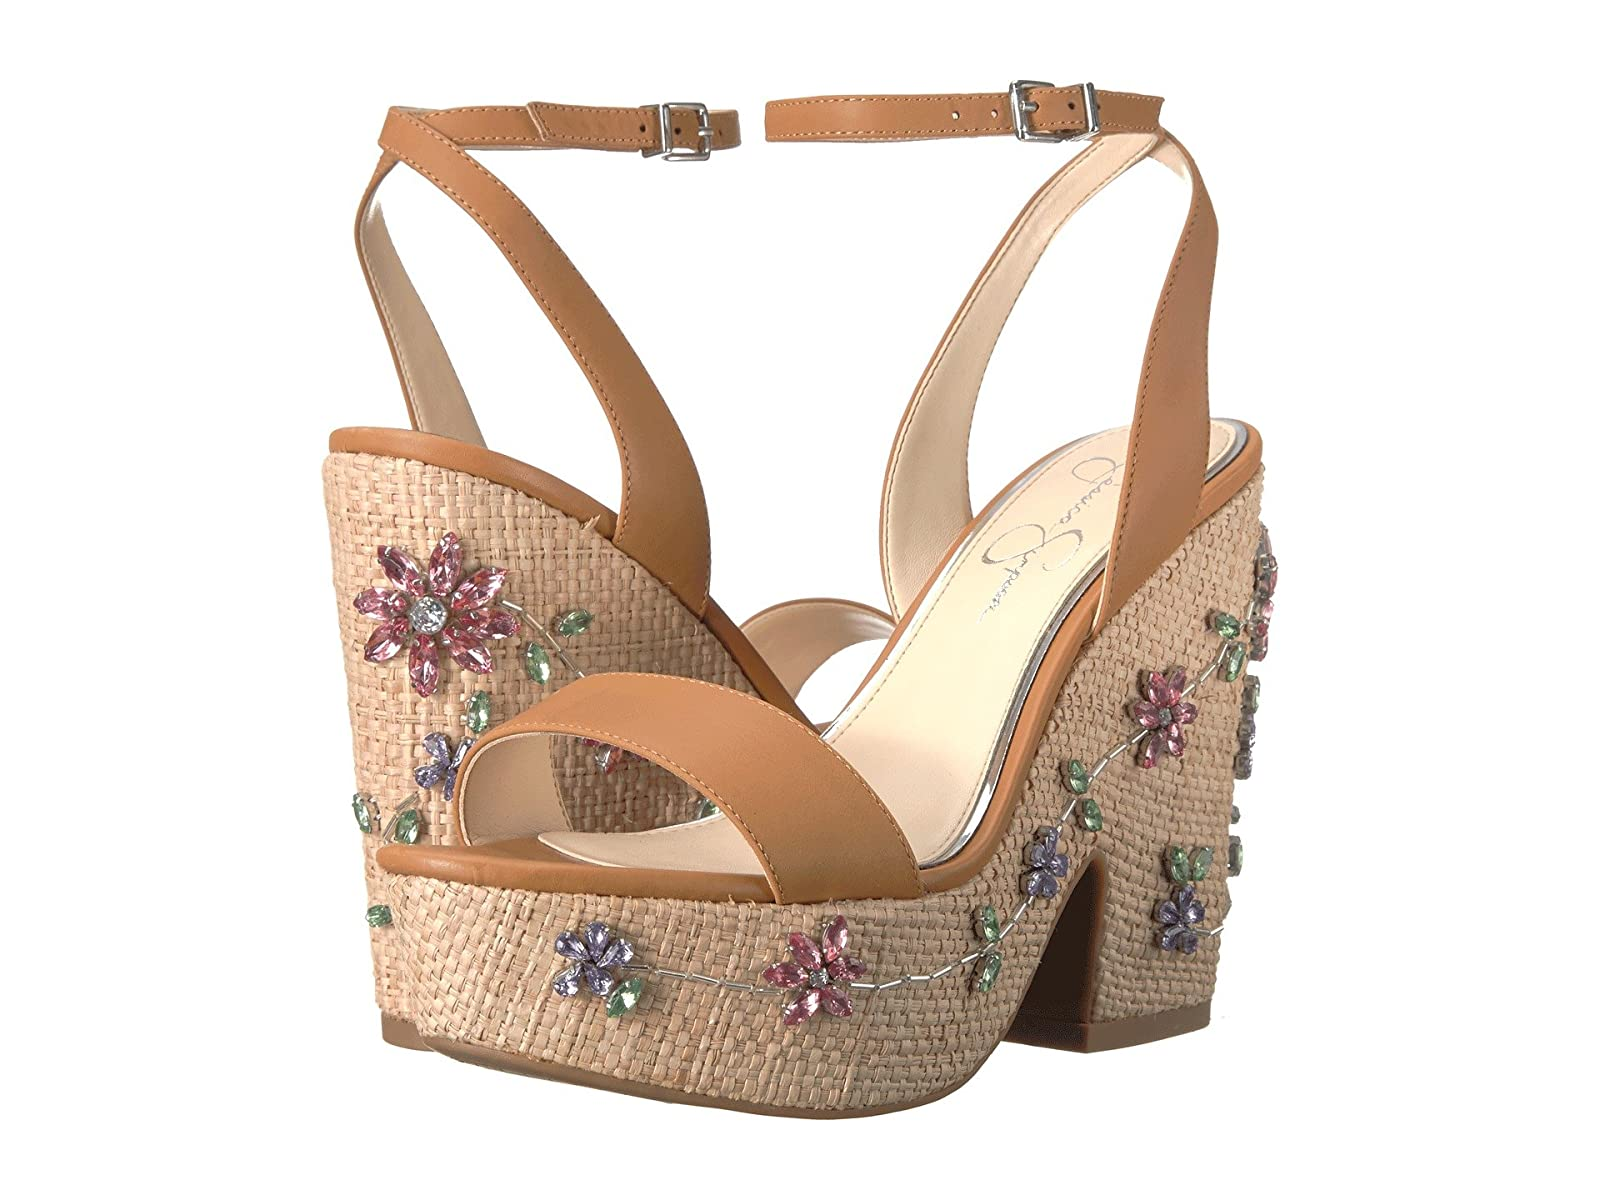 Jessica Simpson CressiaAtmospheric grades have affordable shoes